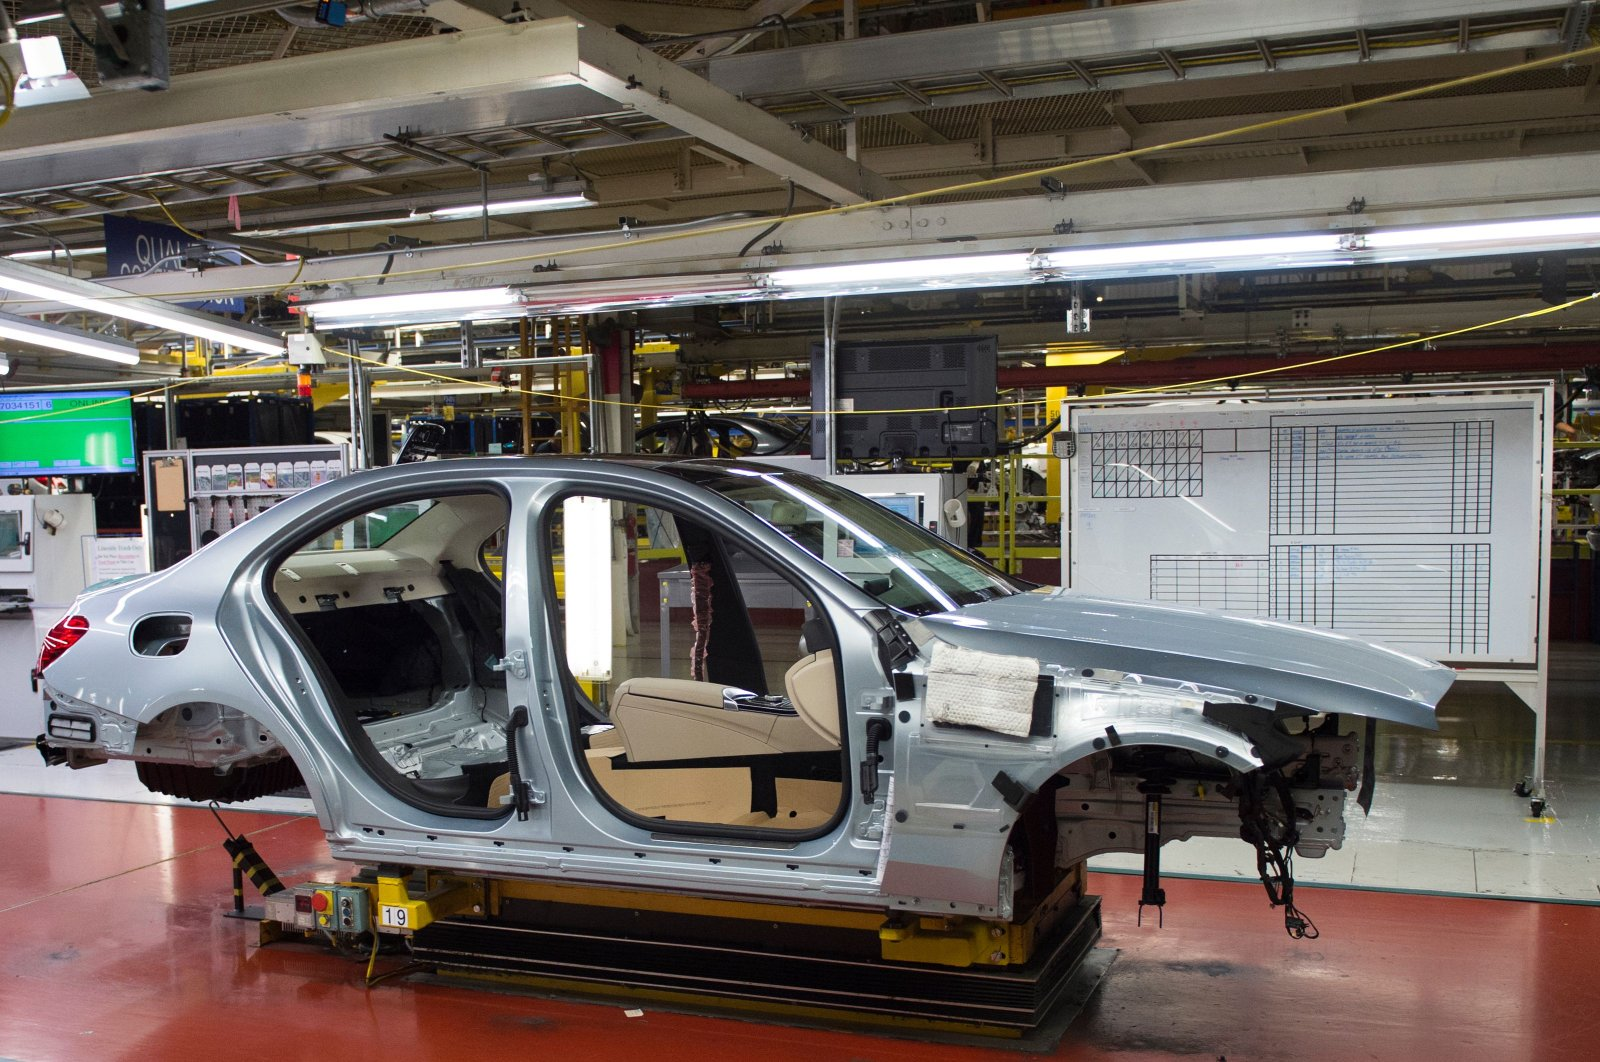 A Mercedes-Benz C-Class frame moves down the production line at the Mercedes-Benz U.S. International factory in Vance, Alabama, U.S., June 8, 2017. (AFP Photo)